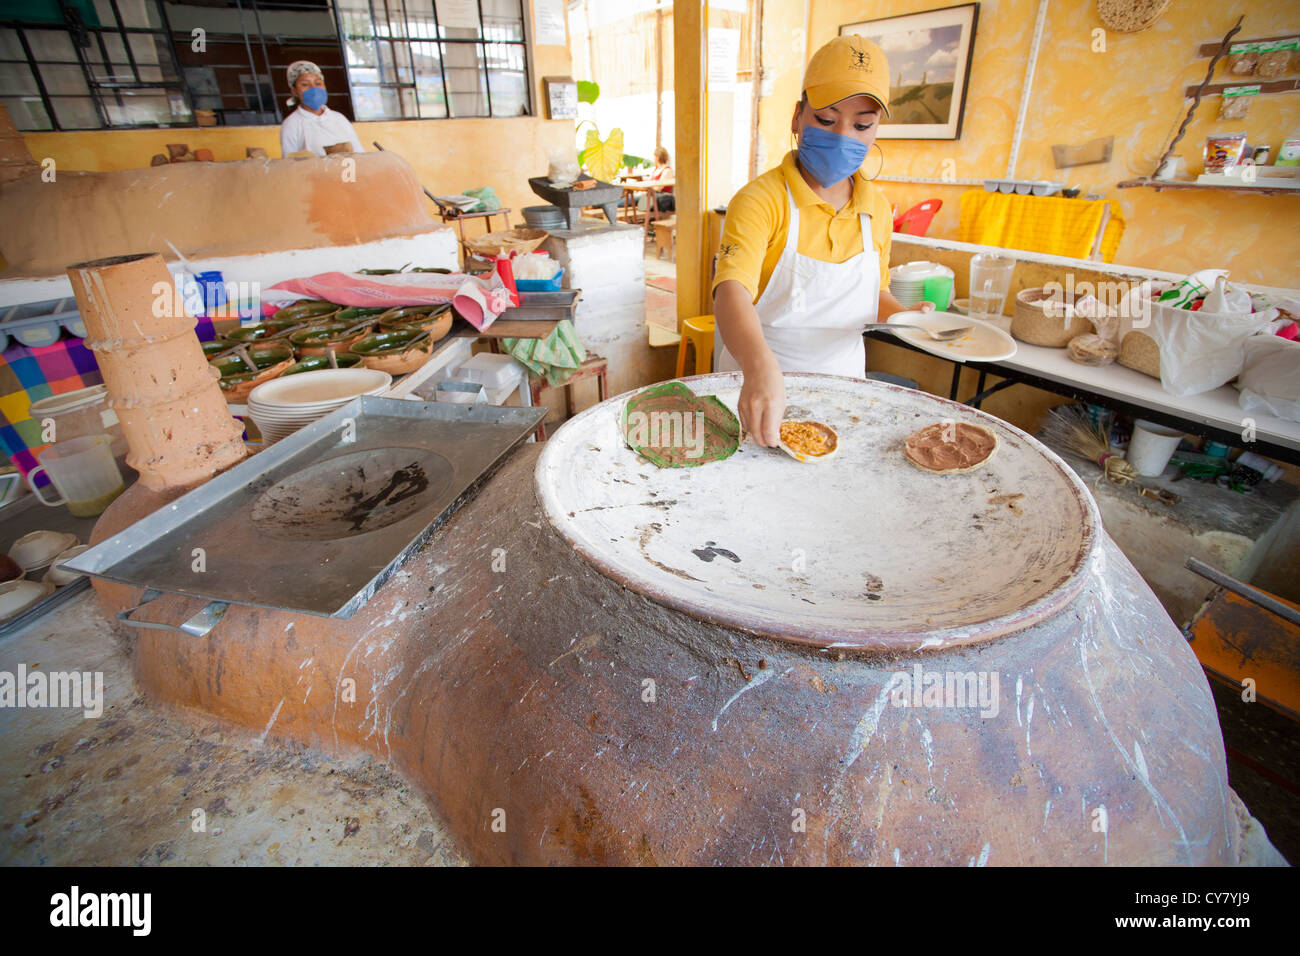 Cooks at the Itanoní eatery in Oaxaca, Mexico prepare various corn-based dishes on a clay oven. - Stock Image